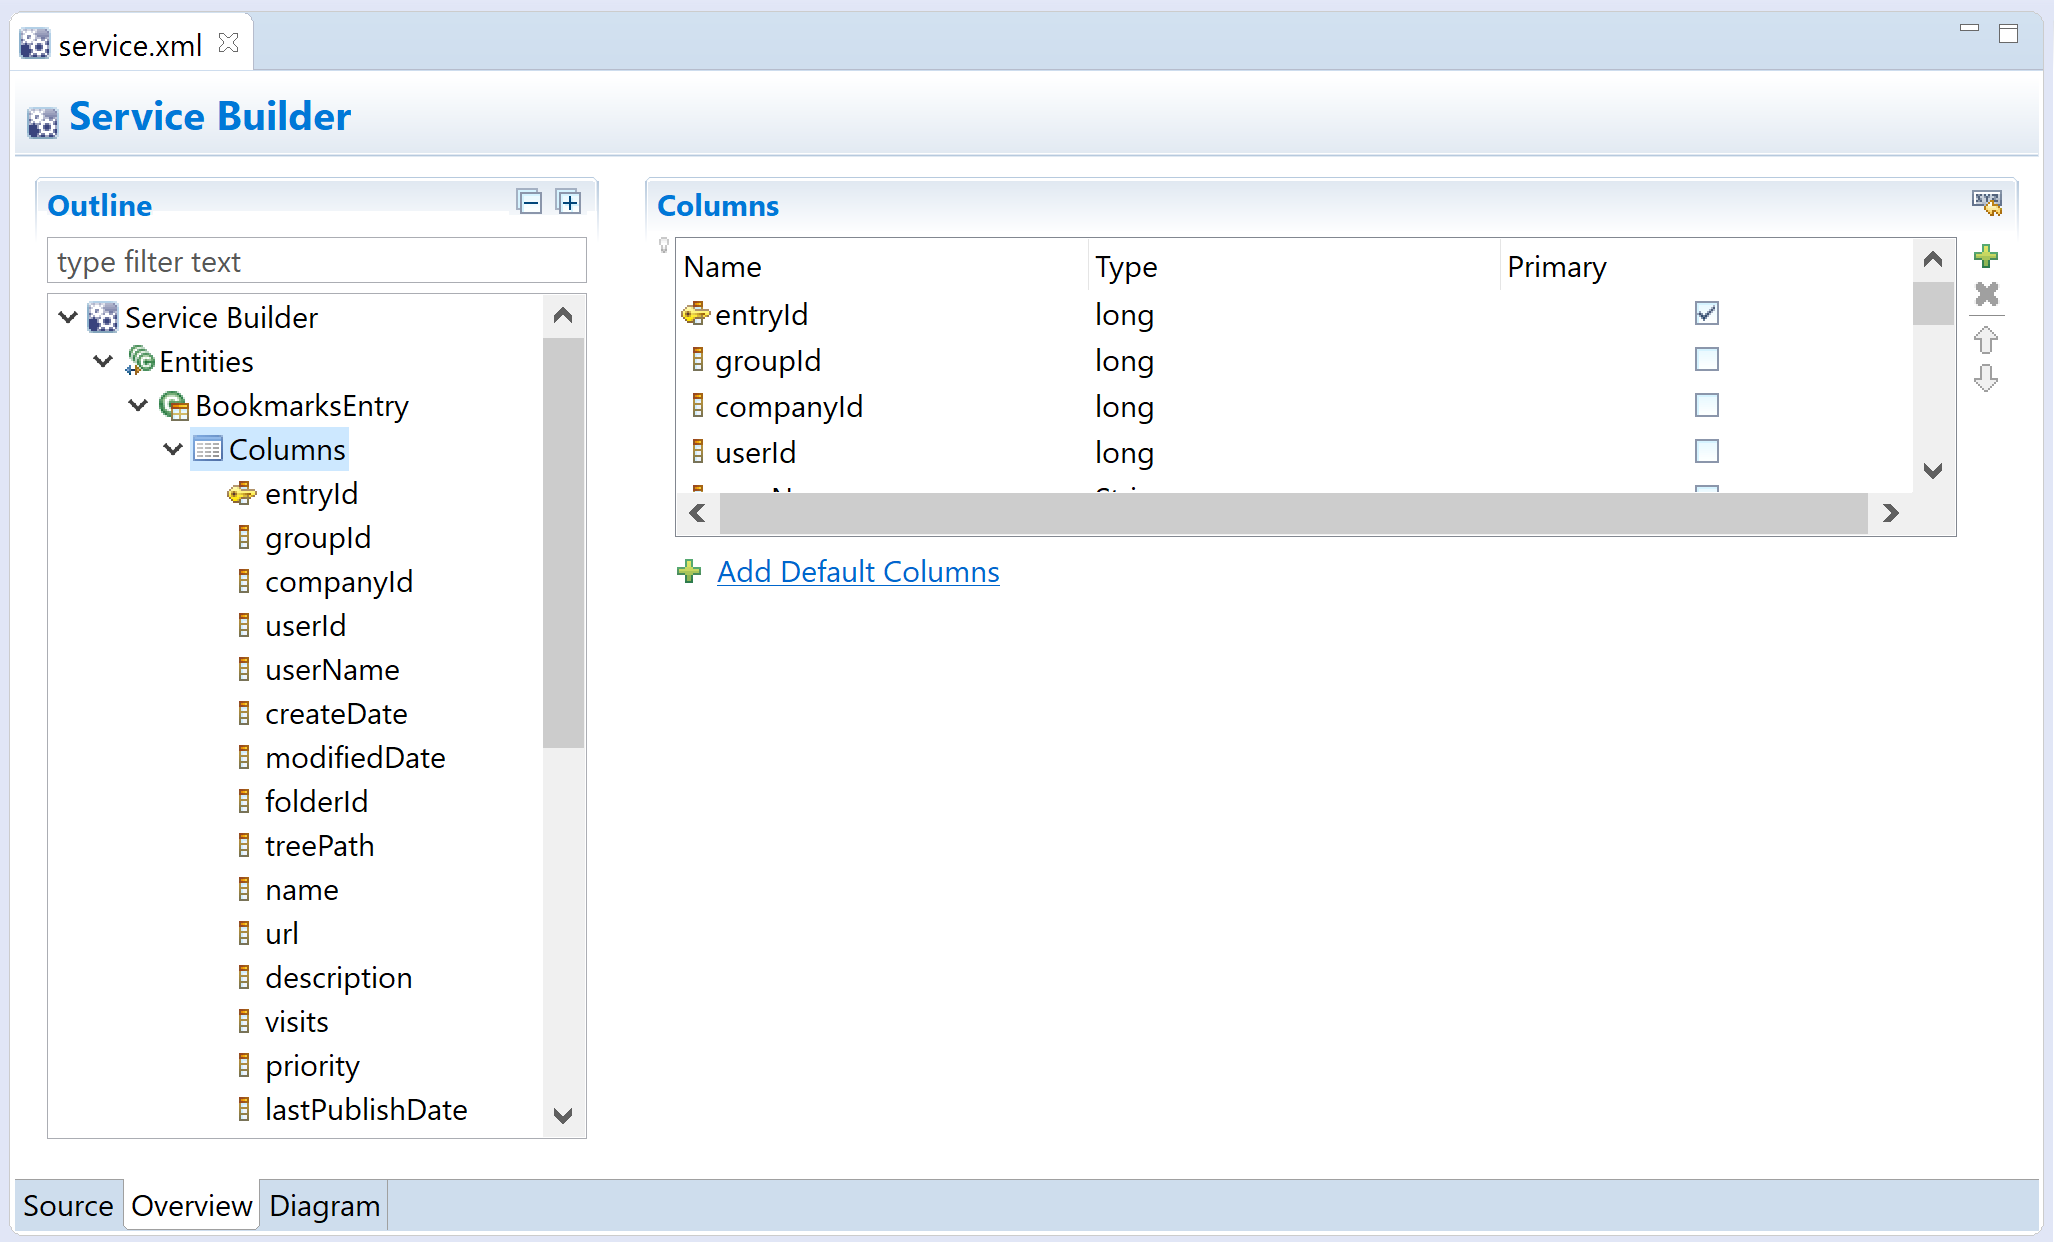 Figure 1: Liferay Dev Studio DXP facilitates defining table columns for entities.